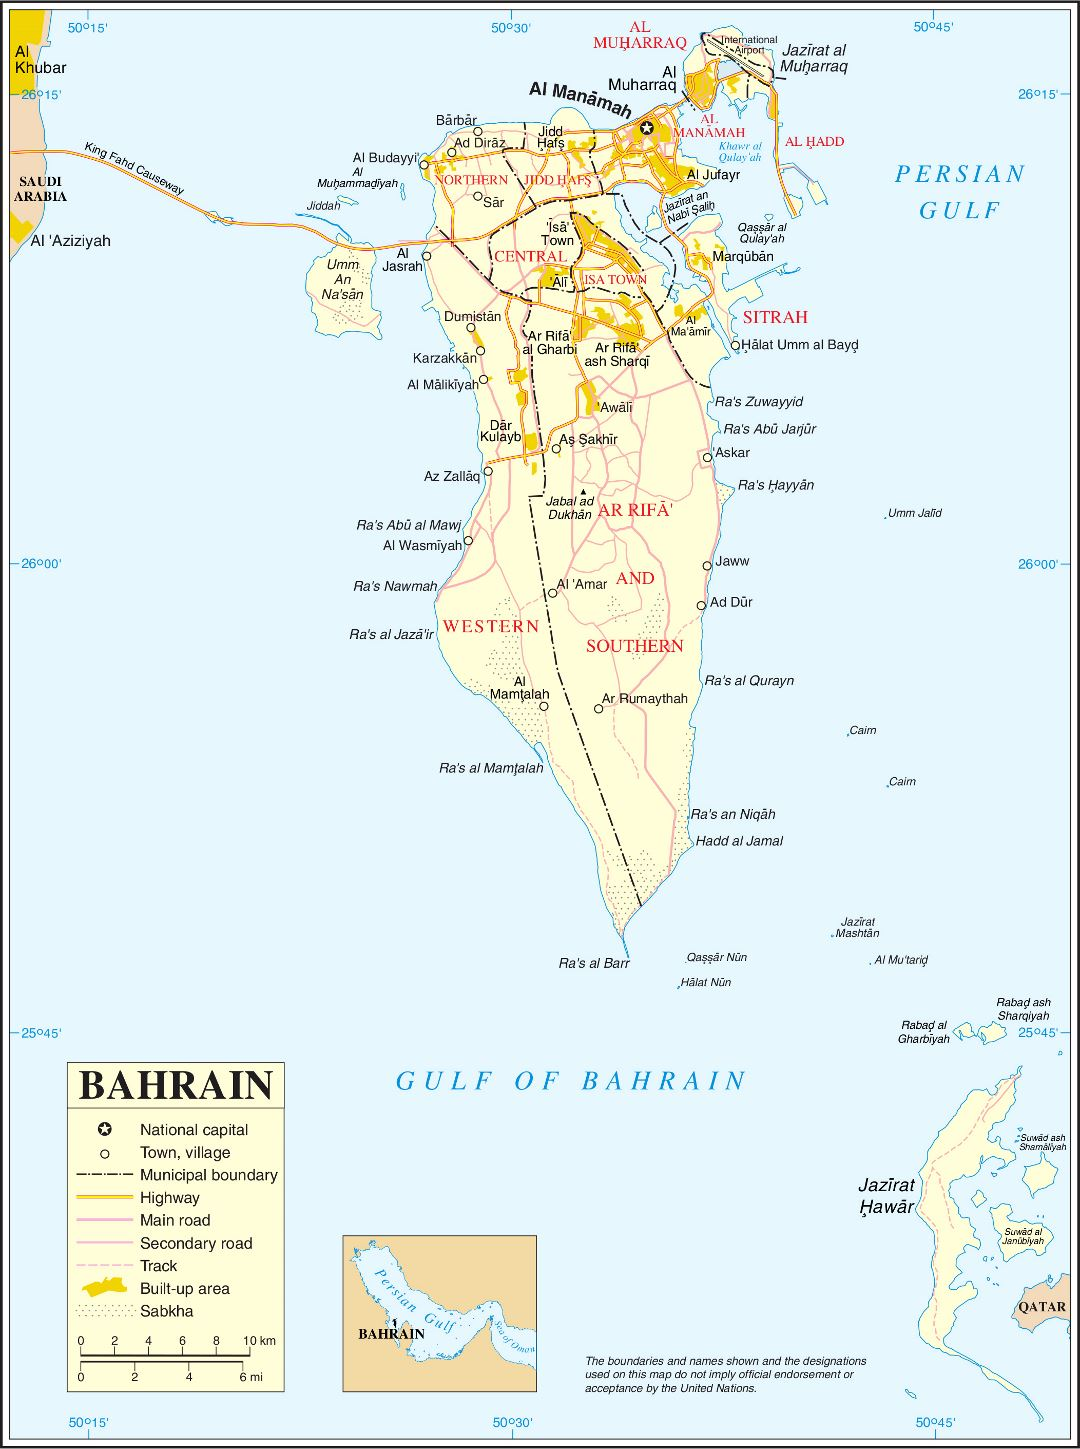 Large scale political map of Bahrain with all roads and cities